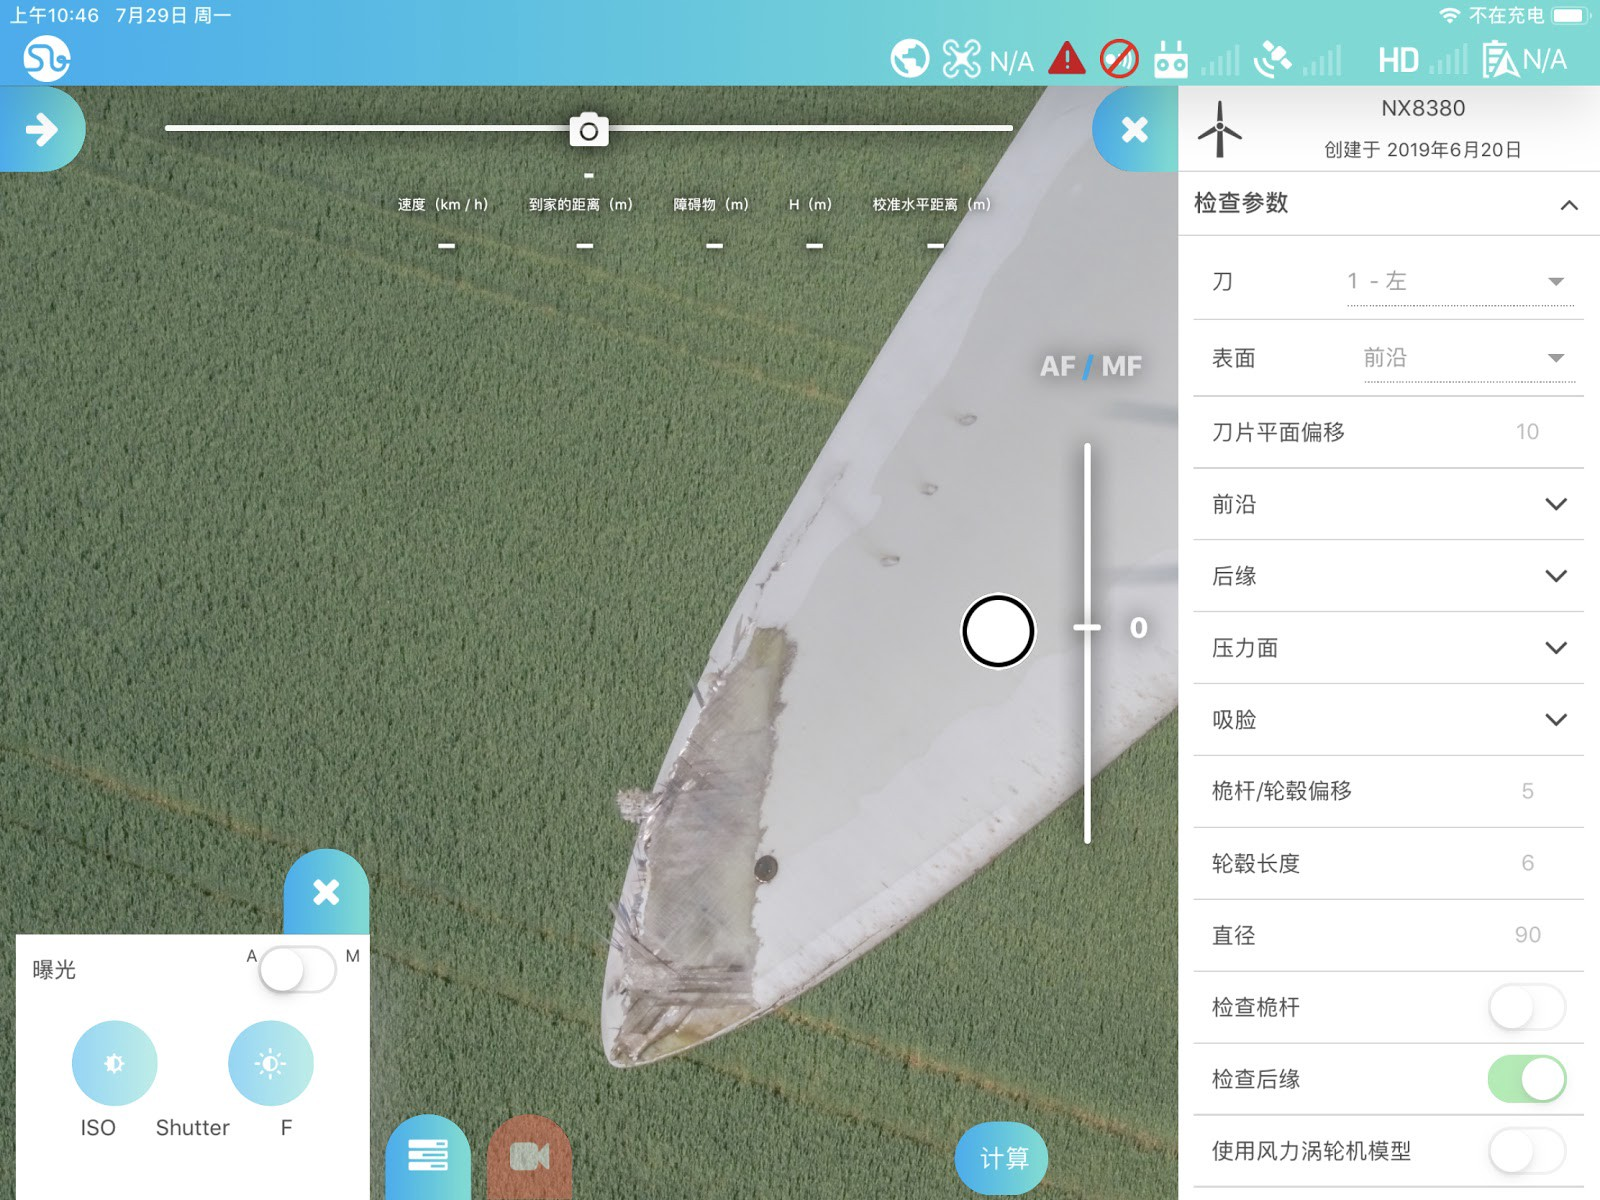 Sterblue App in Chinese with Damaged Blade